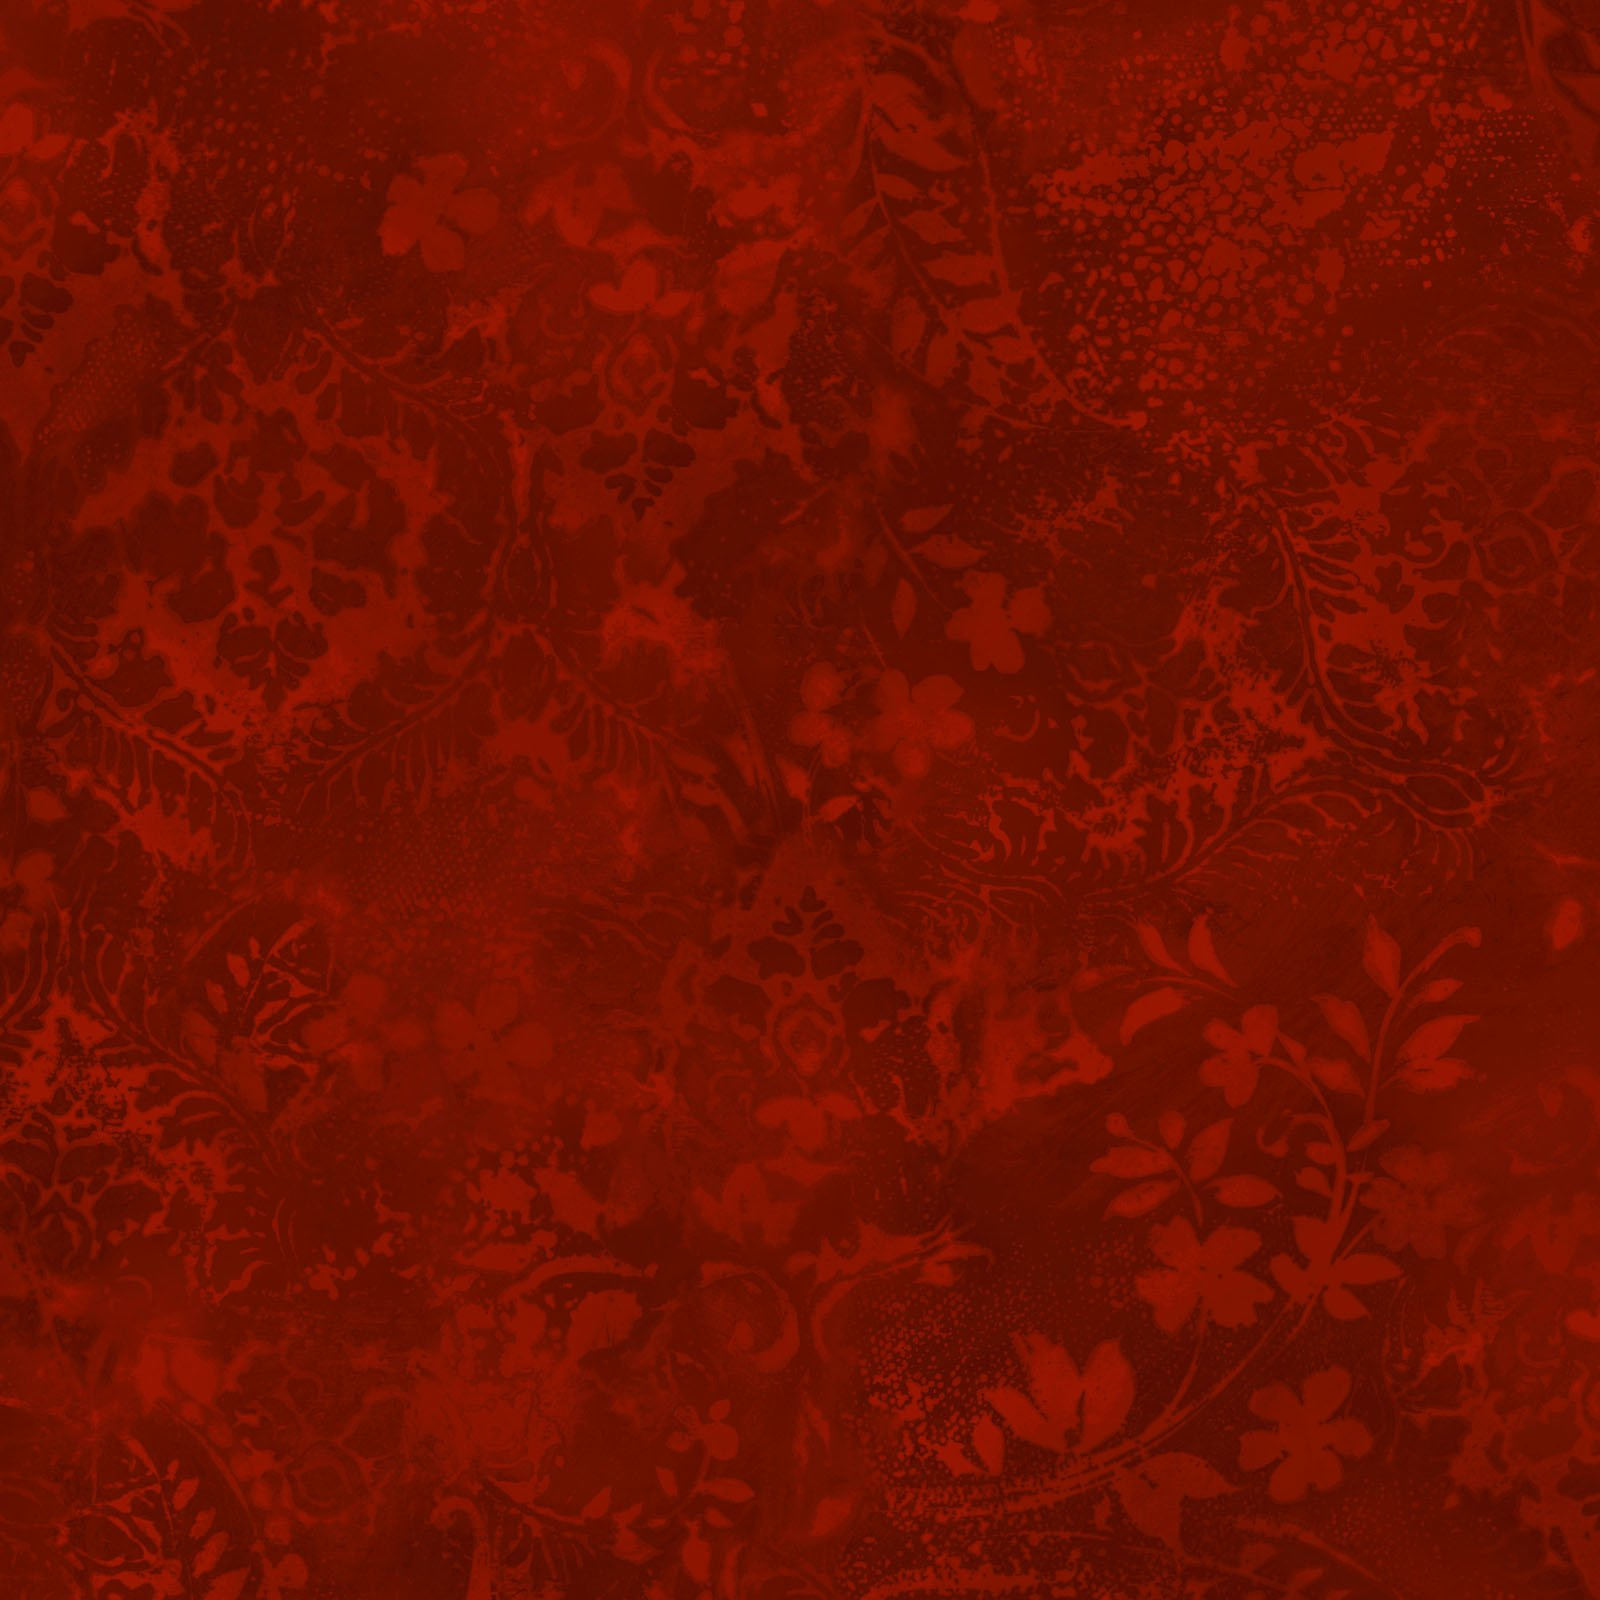 EESC-QBD105 R - BEAUTIFUL BACKING 108 VINTAGE DAMASK BY MAYWOOD RED - ARRIVING IN MAY 2021